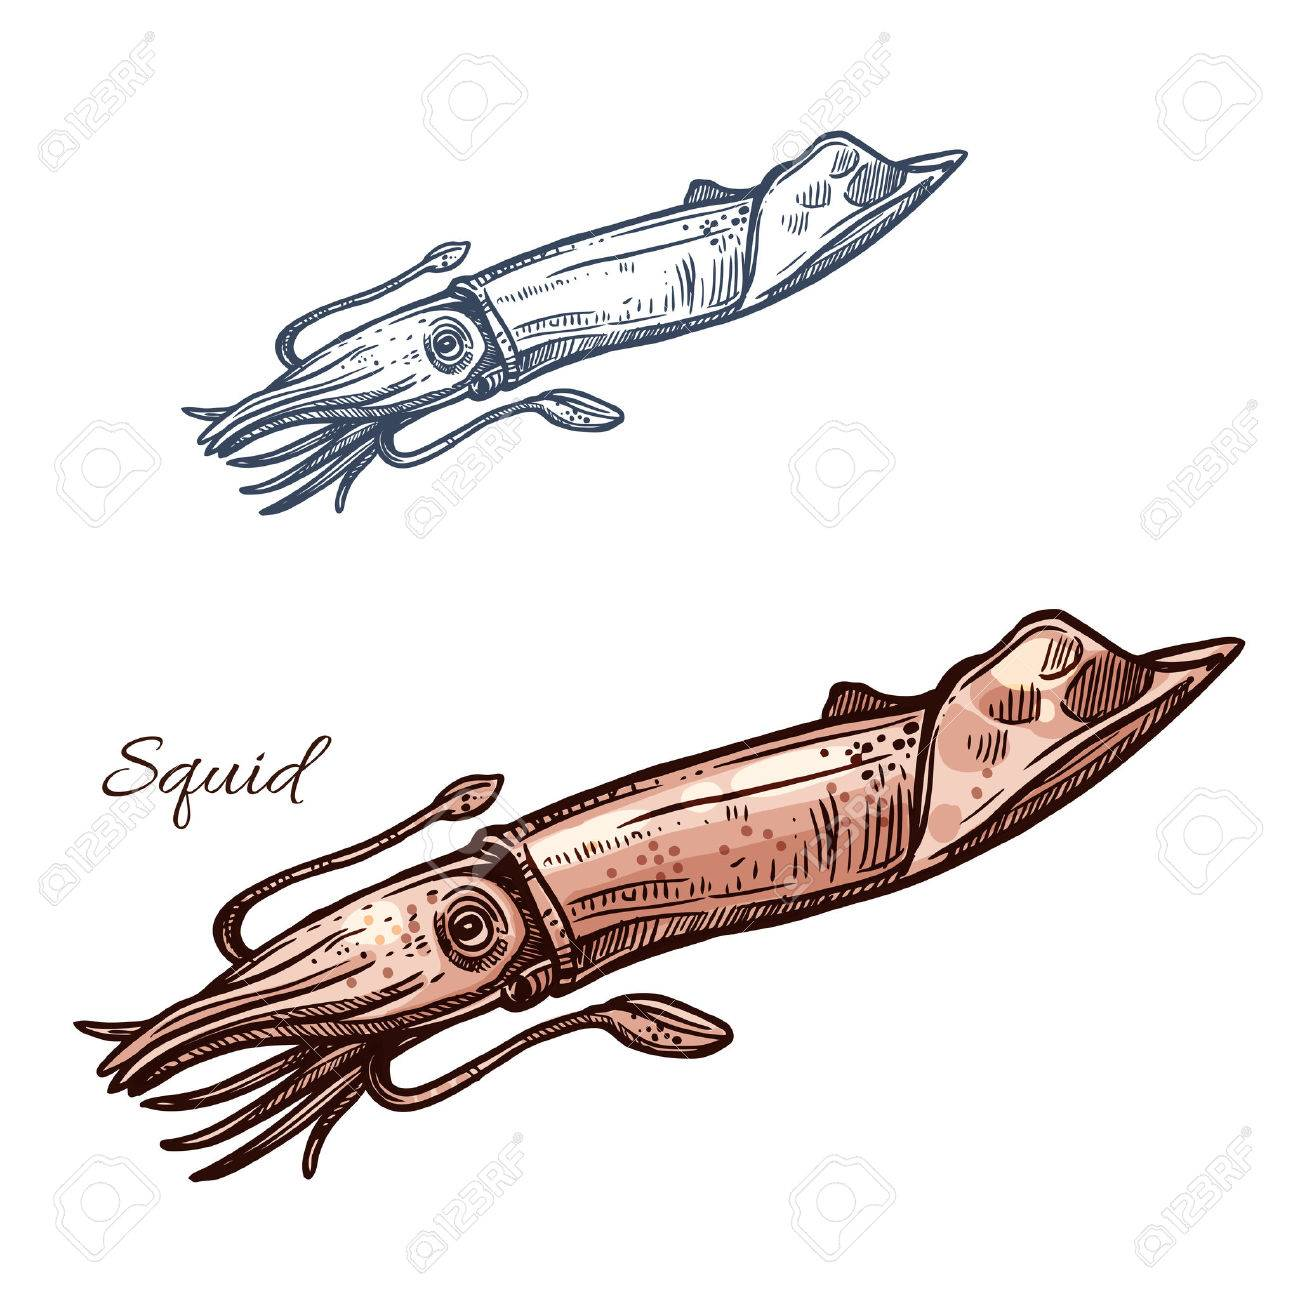 Squid sketch vector icon calamari or ocean cuttlefish mollusk calamari or ocean cuttlefish mollusk species isolated symbol for seafood biocorpaavc Choice Image